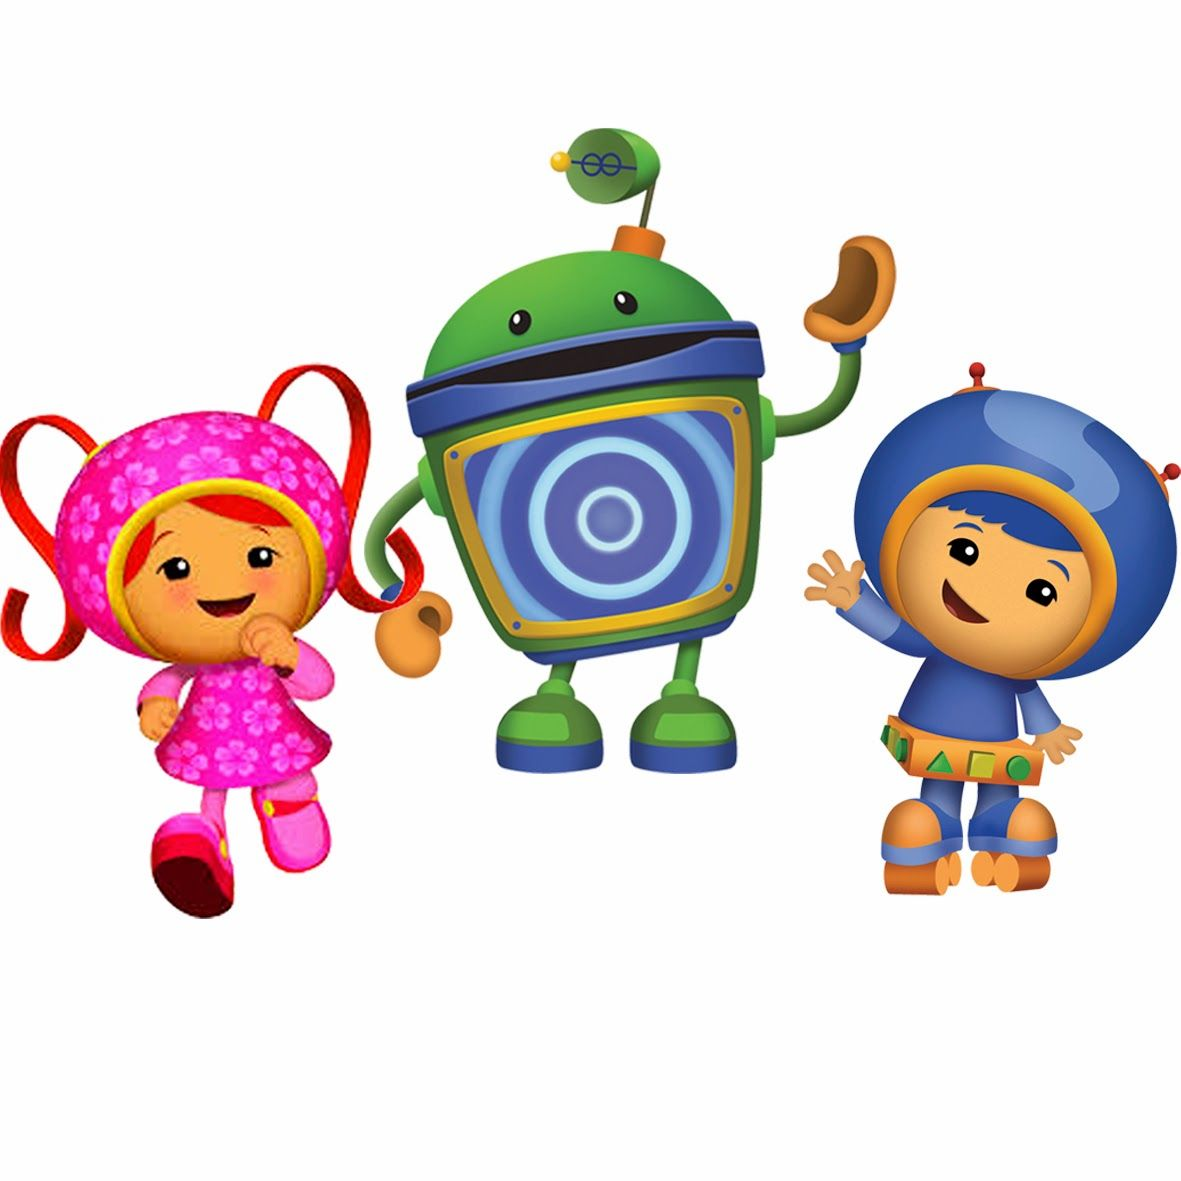 Umizoomi: Free Party Printables, Images and Invitations. | Umi Party ...